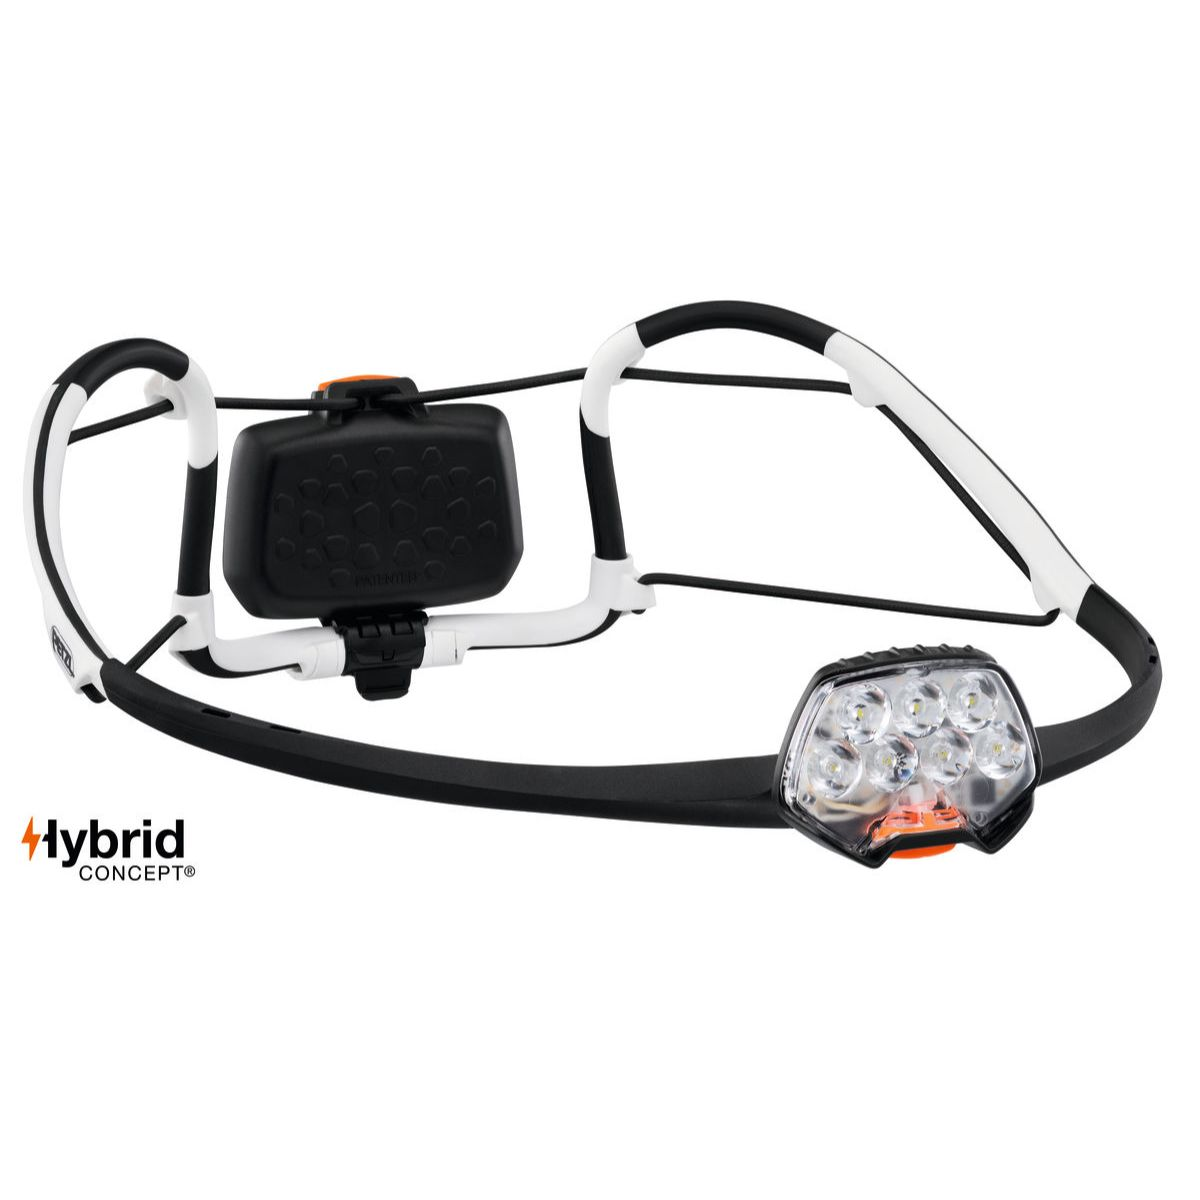 Petzl IKO in white and black